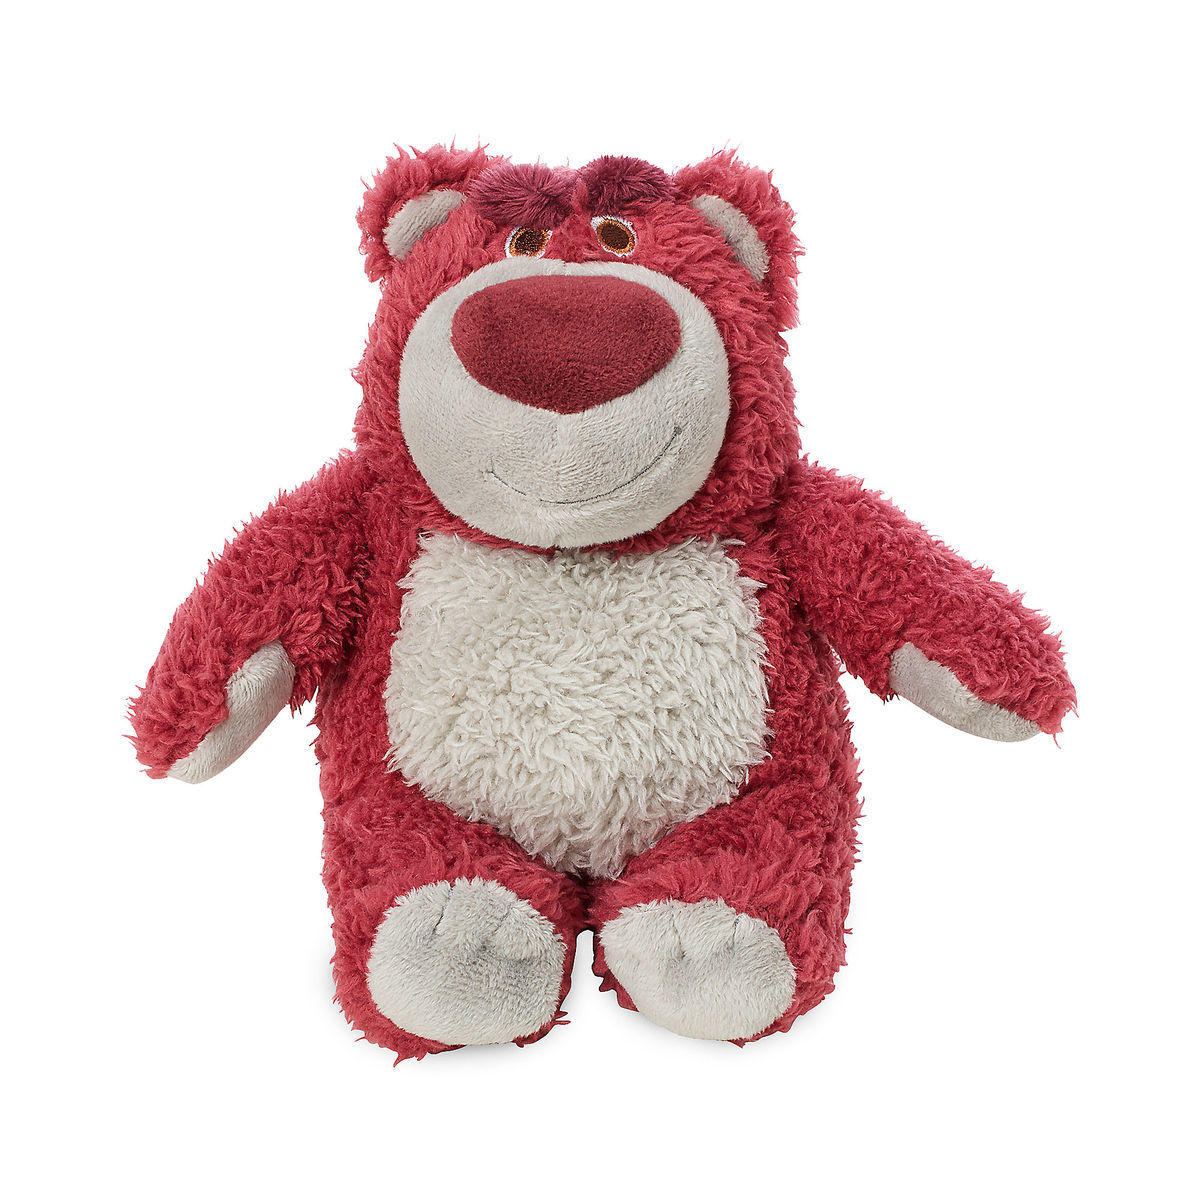 Wondrous Disney Store Lotso Scented Plush Toy Story 3 Mini Bean Bag 7 New With Tag Alphanode Cool Chair Designs And Ideas Alphanodeonline